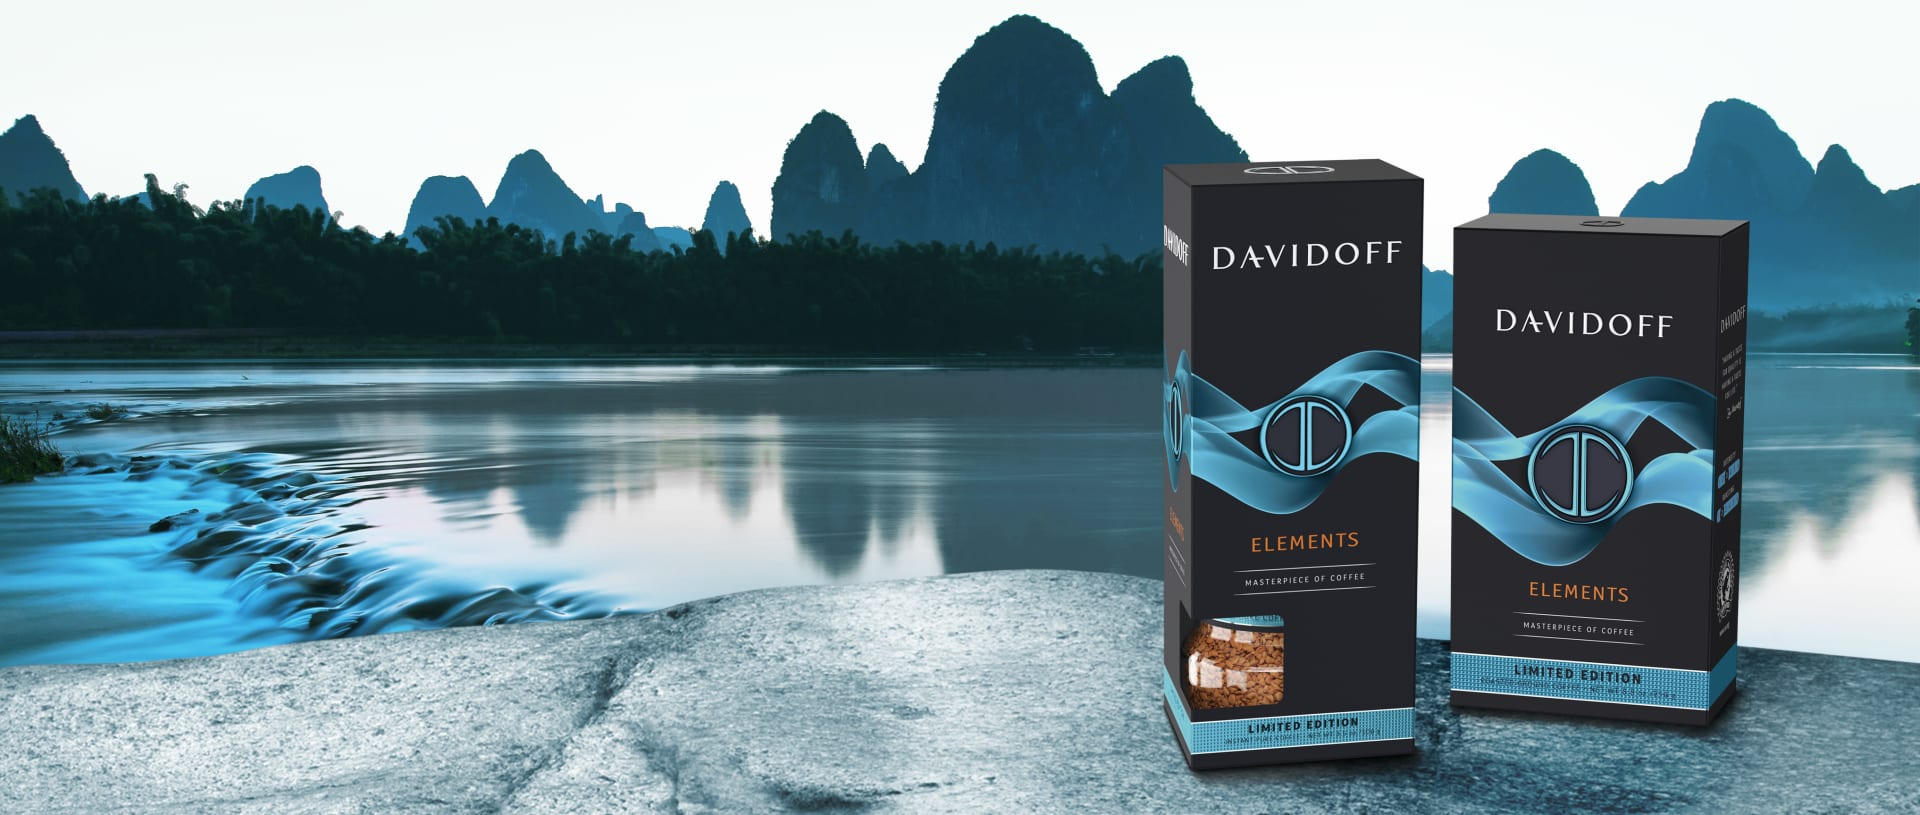 DAVIDOFF Café - Limited edition elements